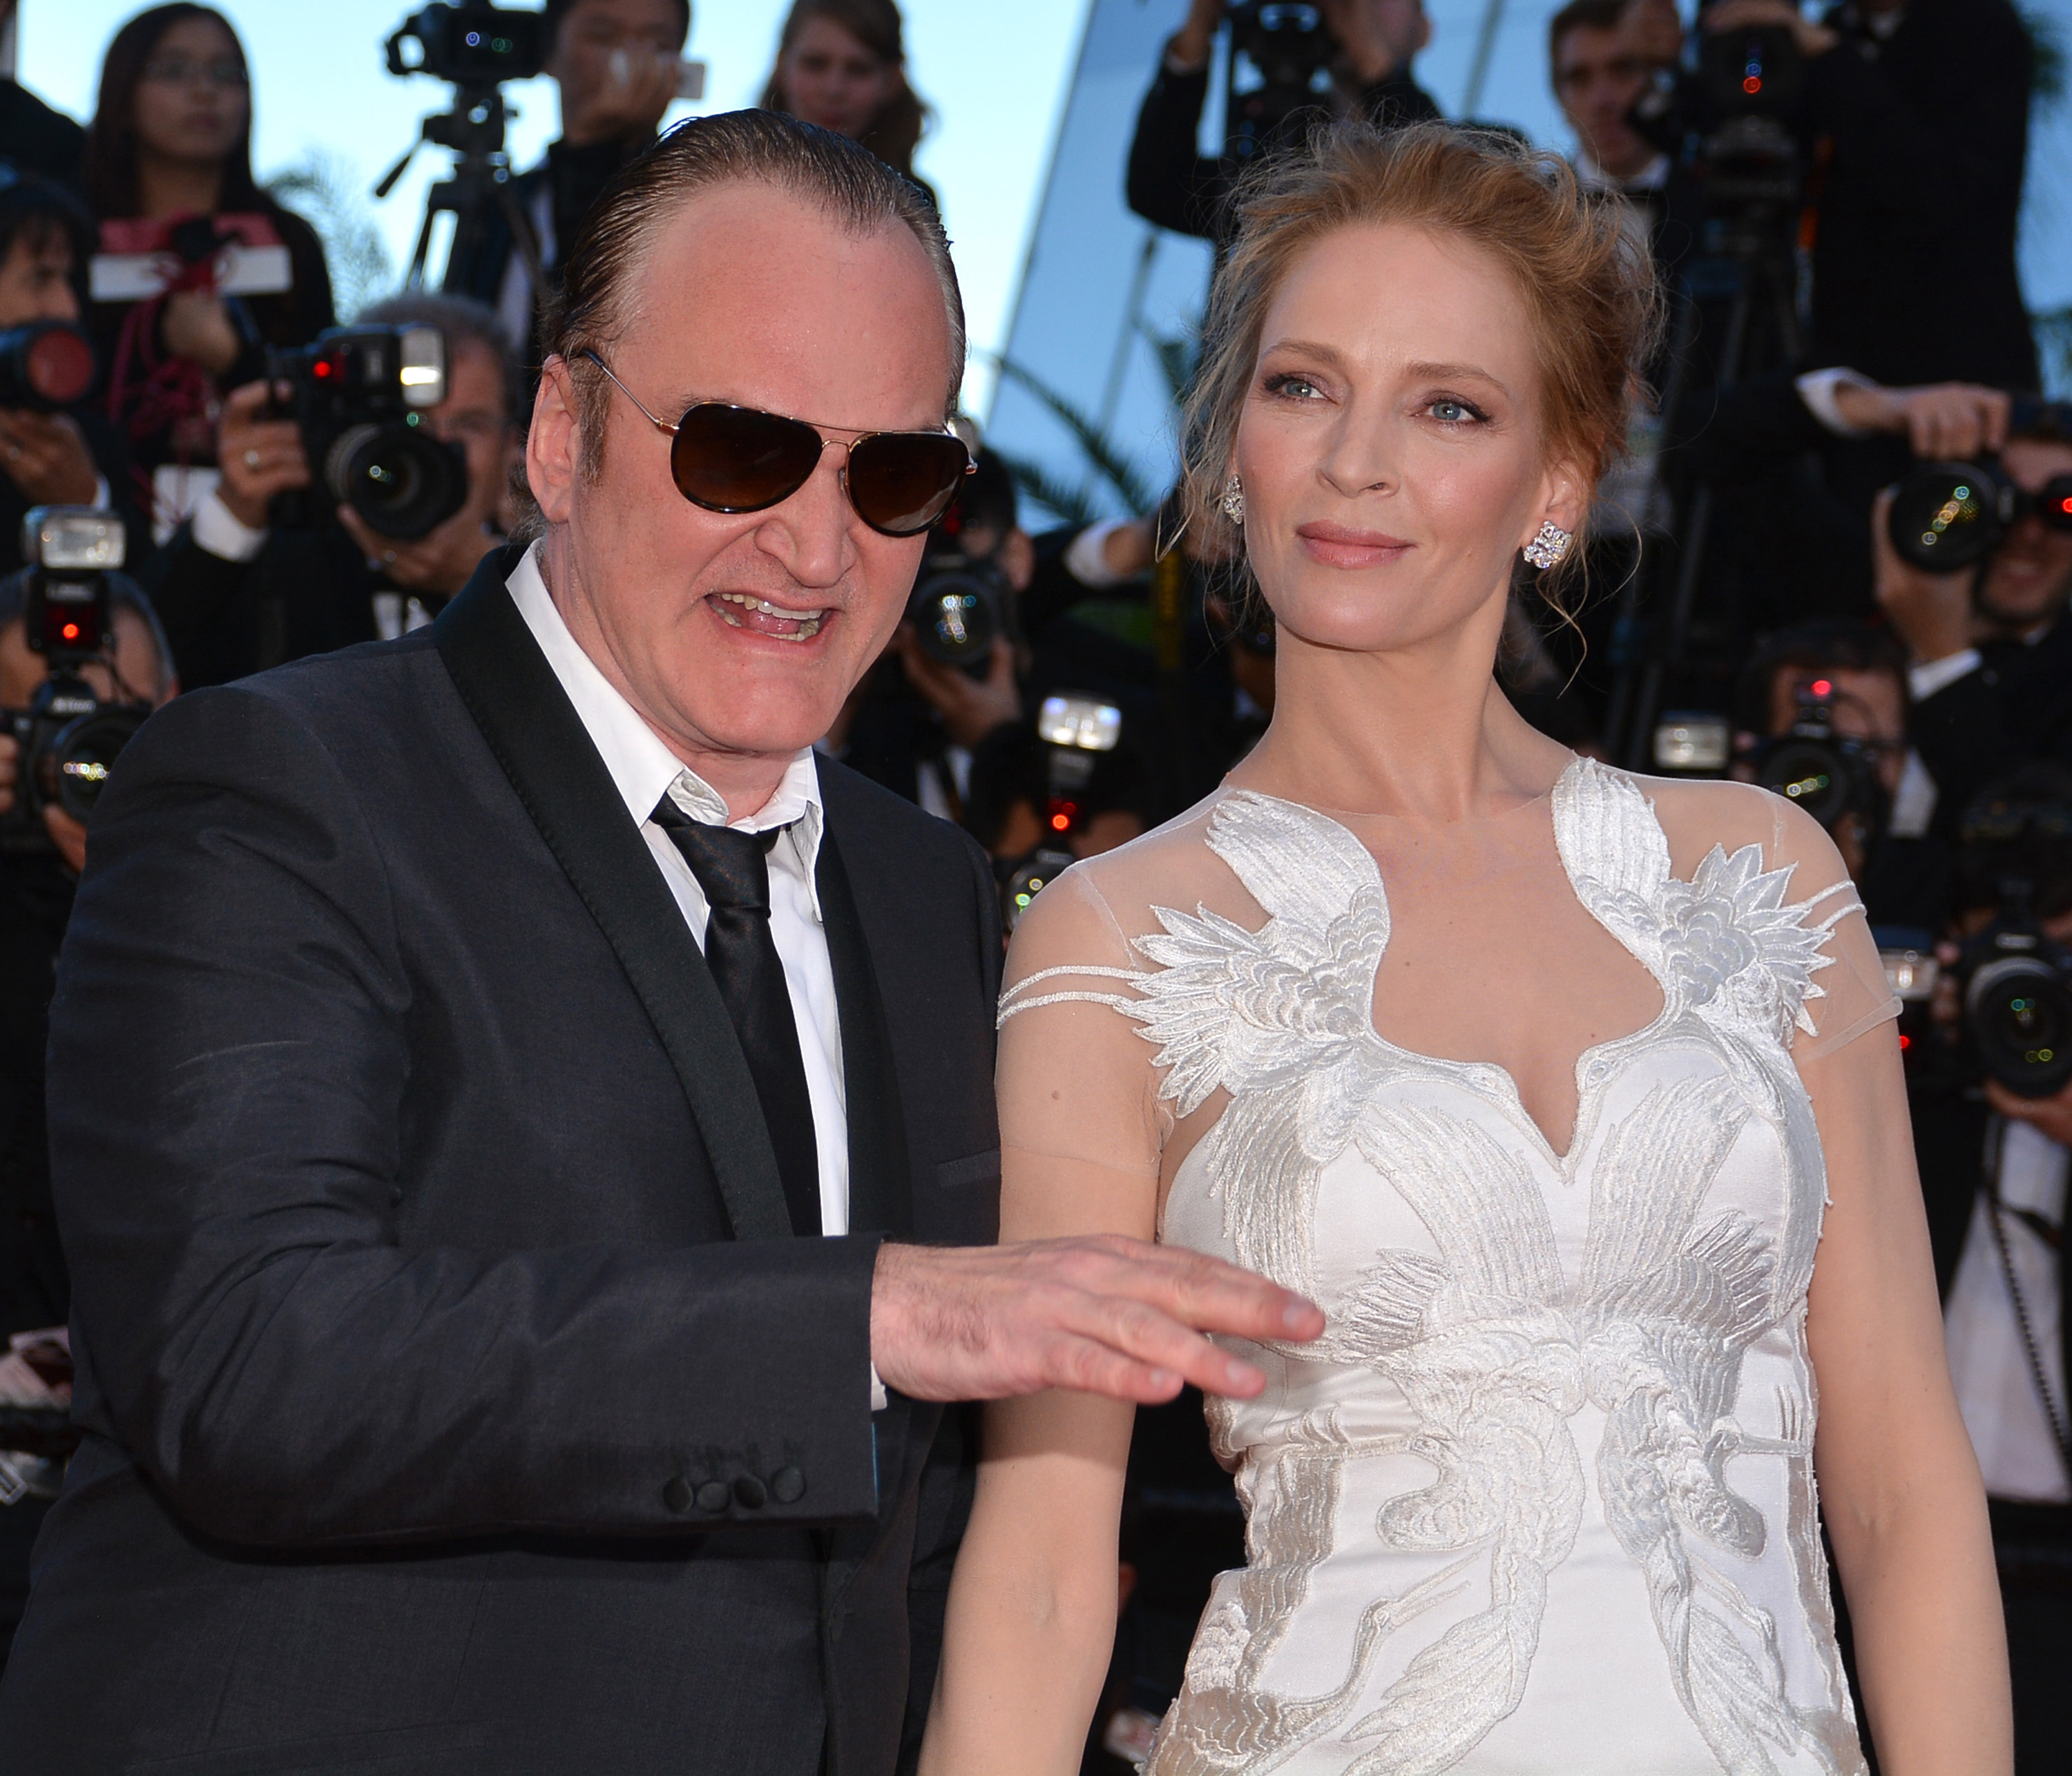 CANNES, FRANCE - MAY 24: US actress Uma Thurman (R) and US director Quentin Tarantino (L) attend the 'Per un pugno di dollari' (A Fistful of Dollars) film screening and the Closing Ceremony of the 67th Cannes Film Festival in Cannes, France on May 24, 2014. (Photo by Mustafa Yalcin/Anadolu Agency/Getty Images)